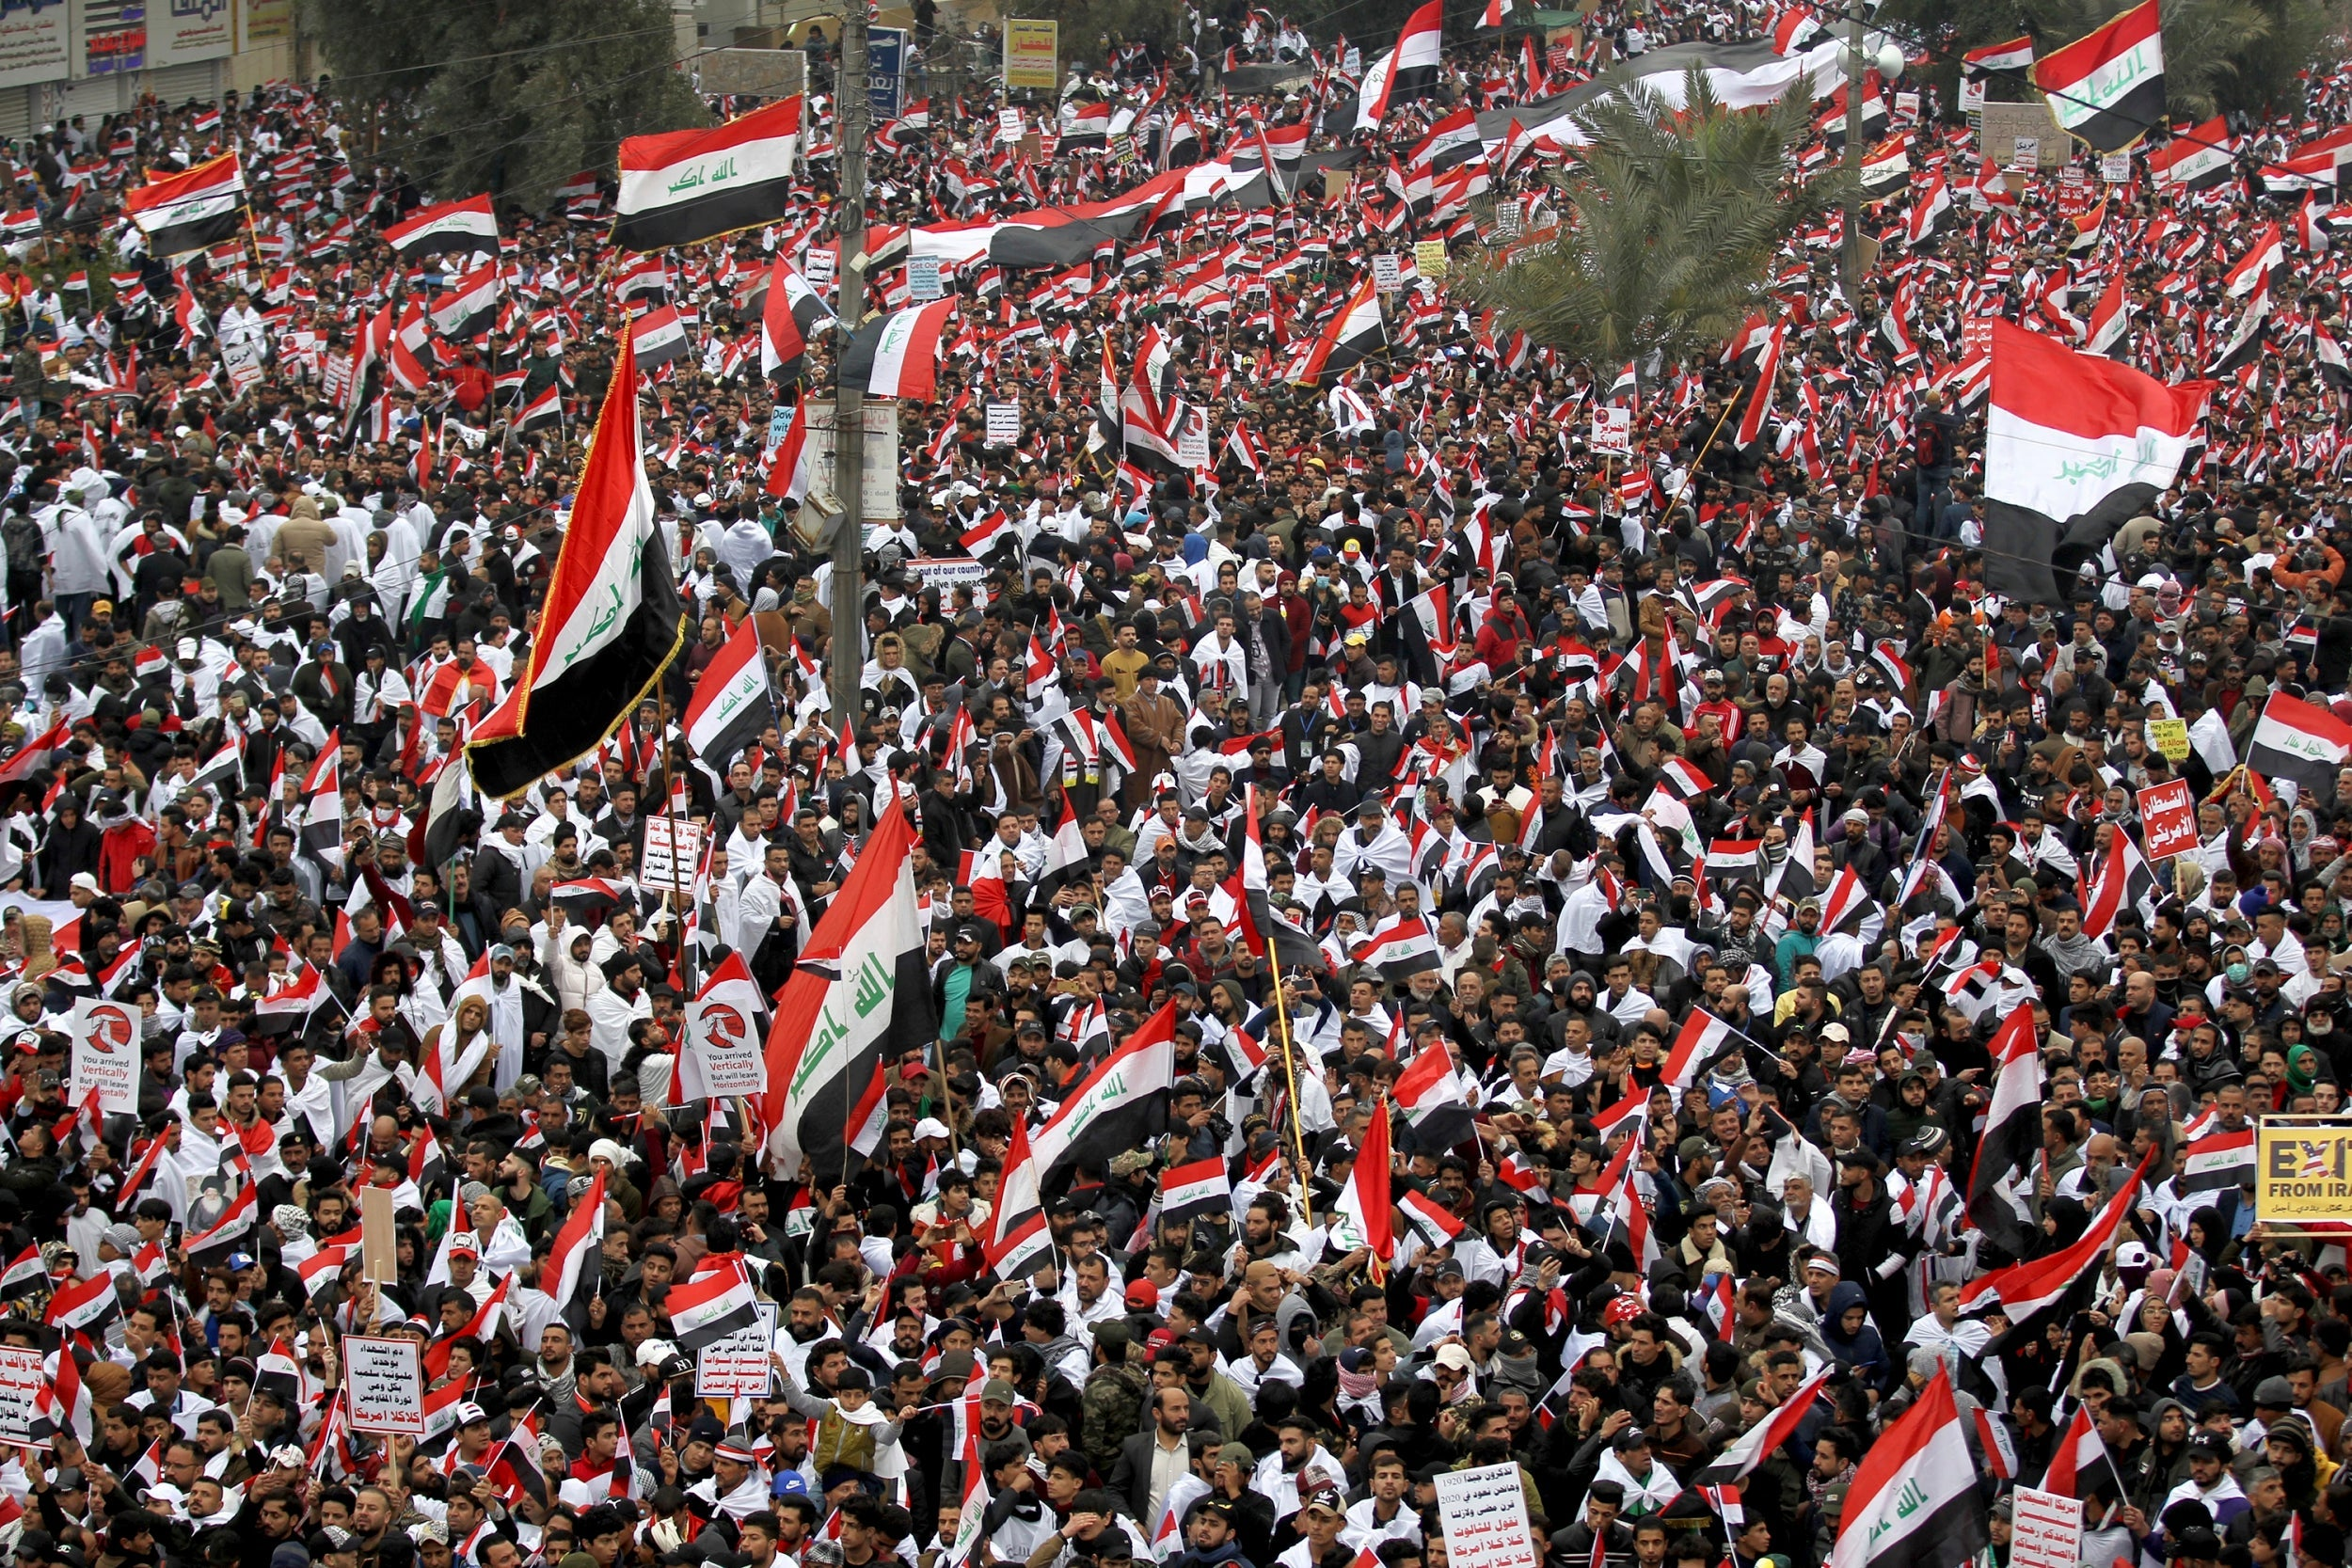 'No, no America': Thousands march in Iraq to demand US forces leave